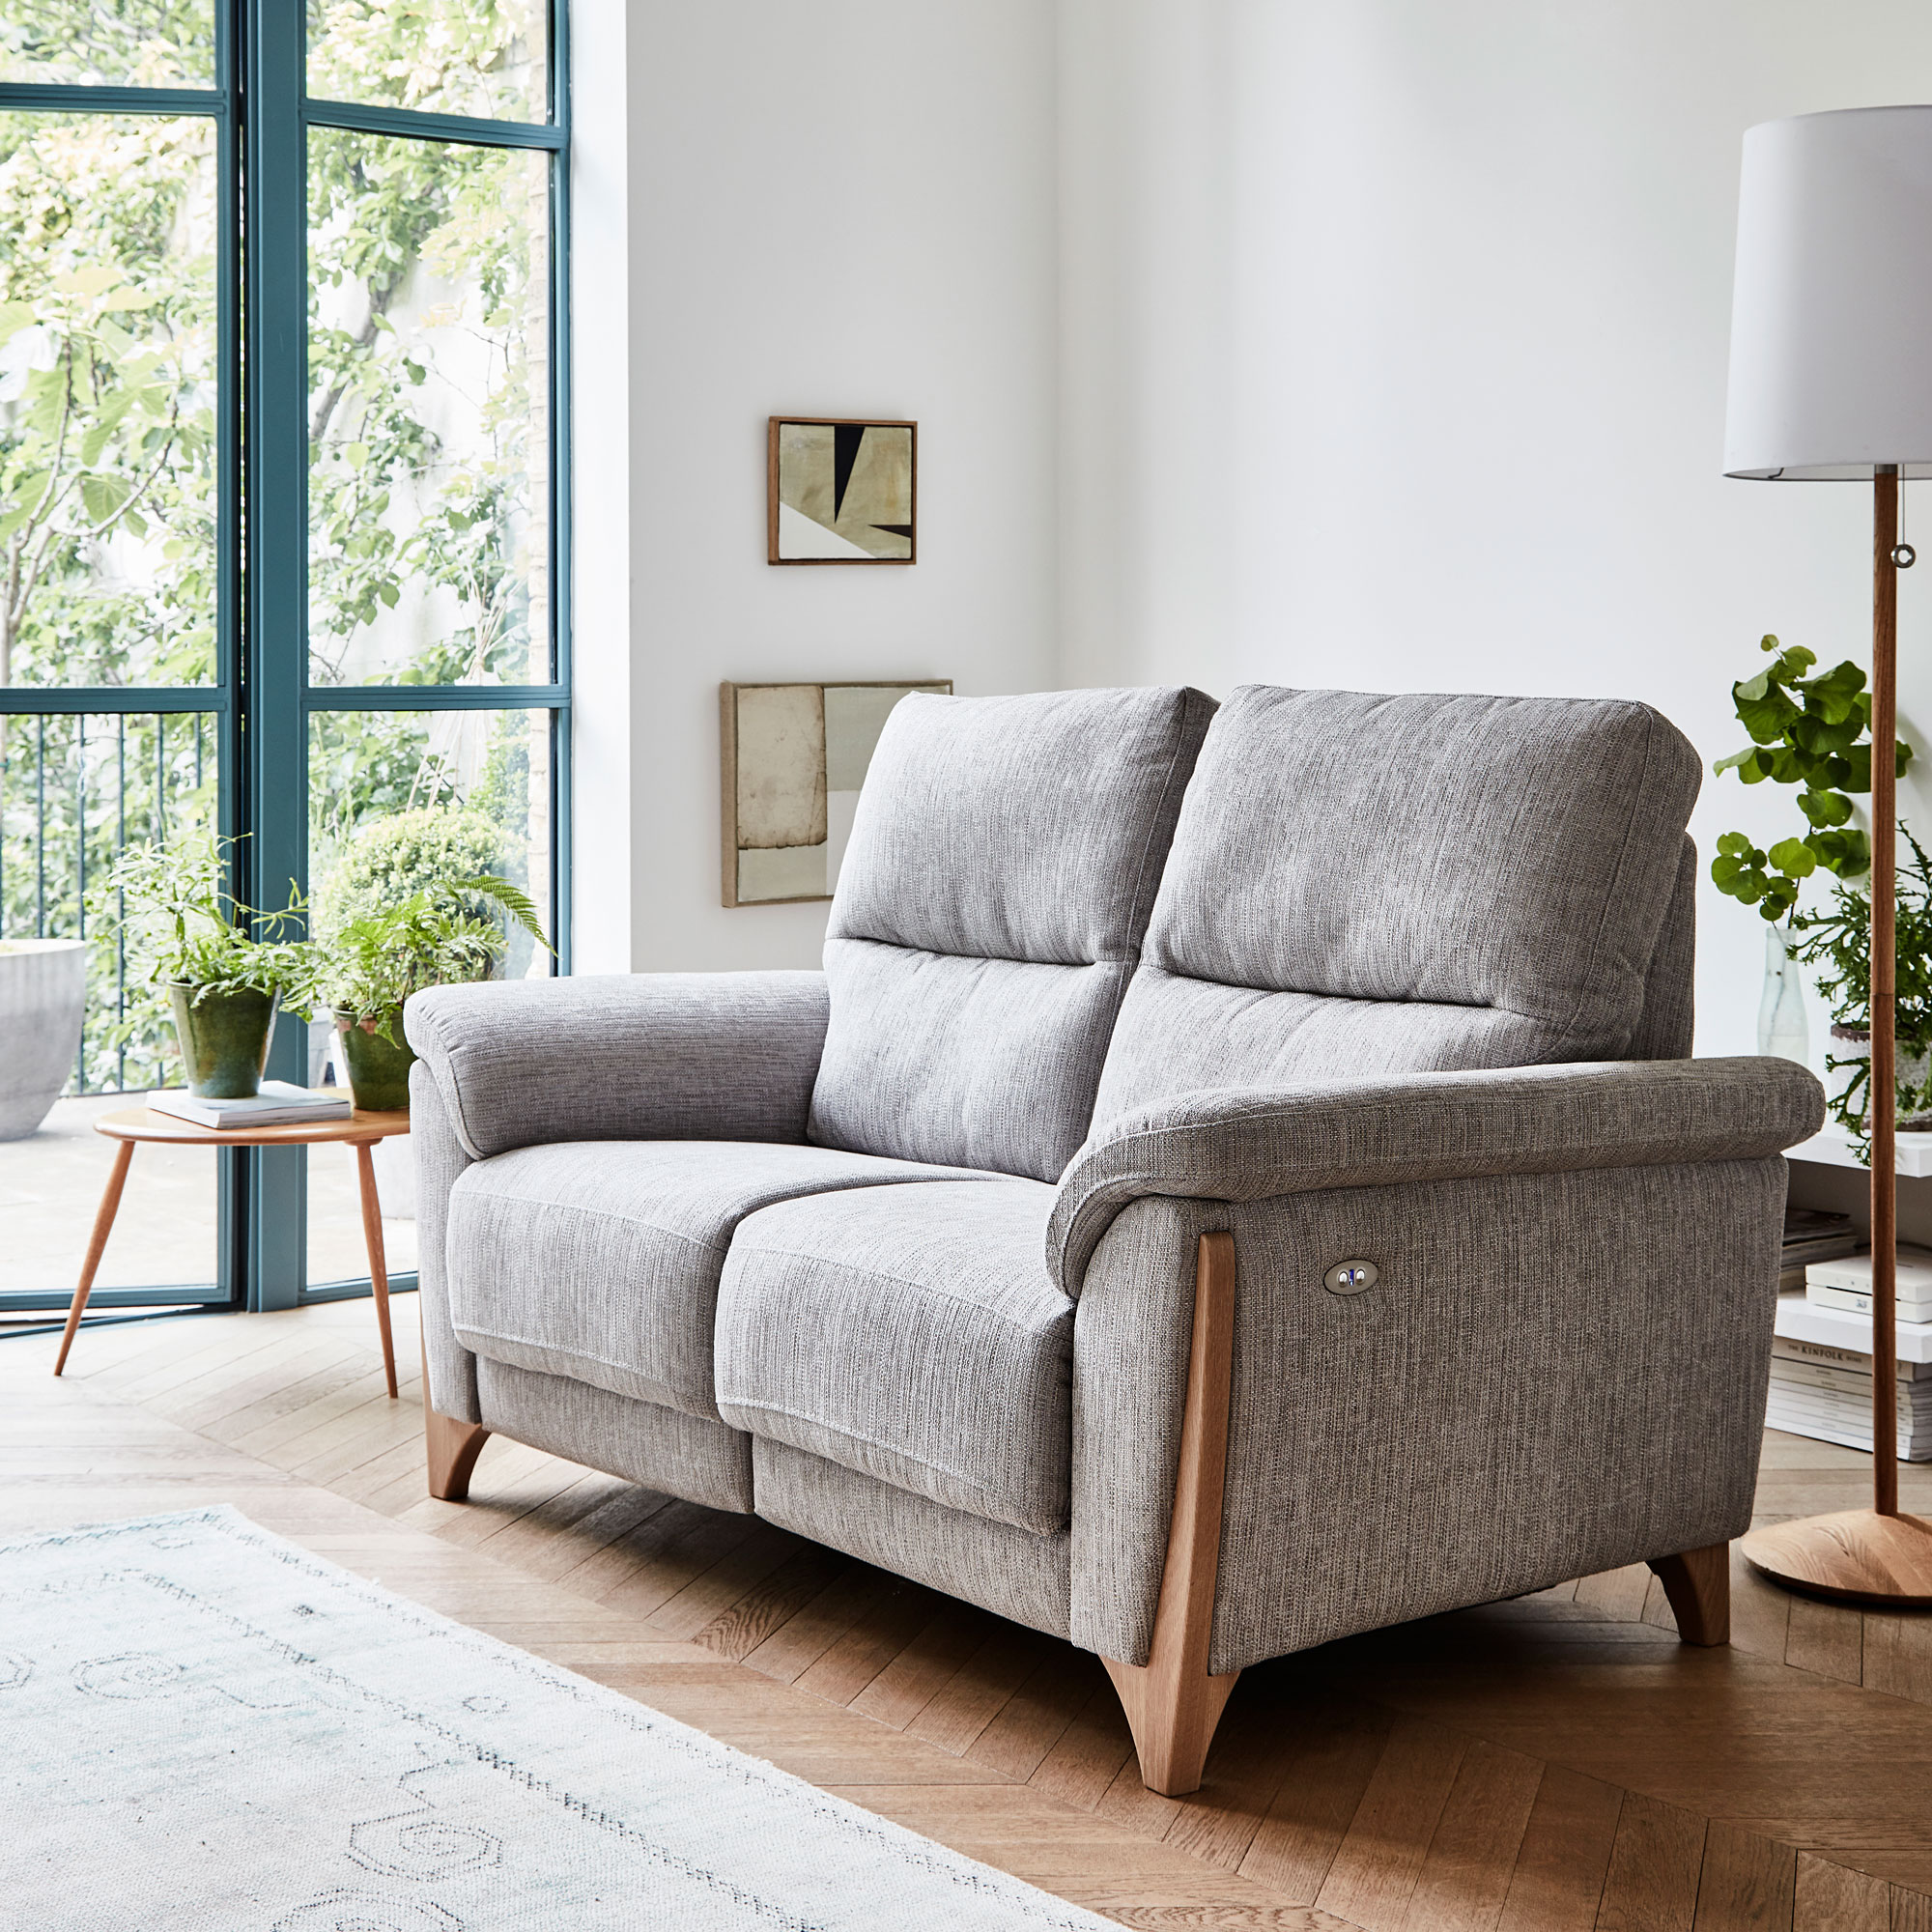 Ercol Enna Medium Sofa in fabric